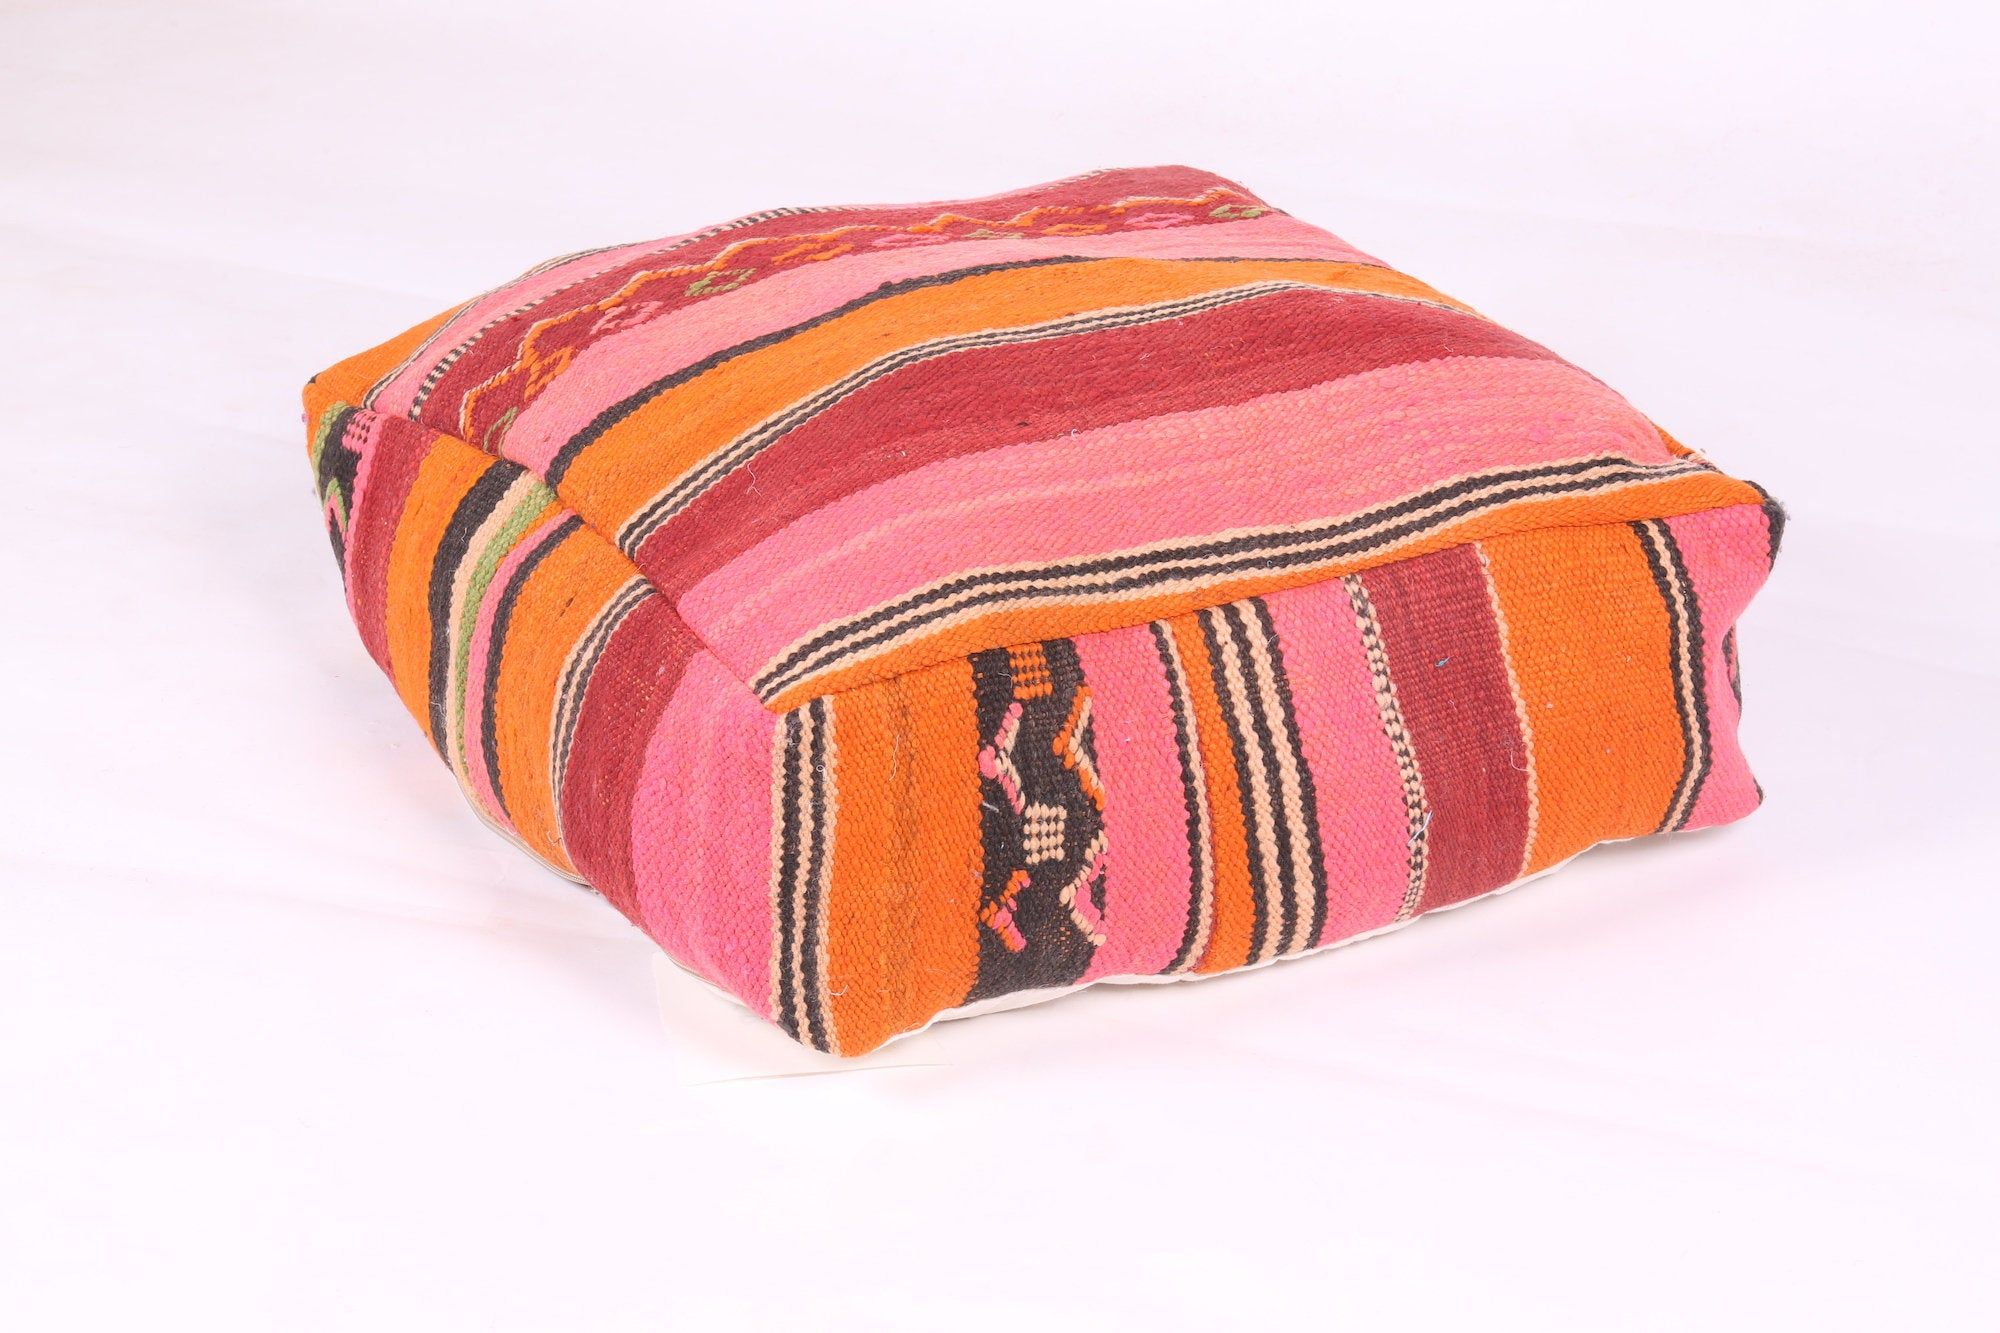 Handwoven Kilim Pouf Moroccan Pillow In 2020 Handwoven Kilim